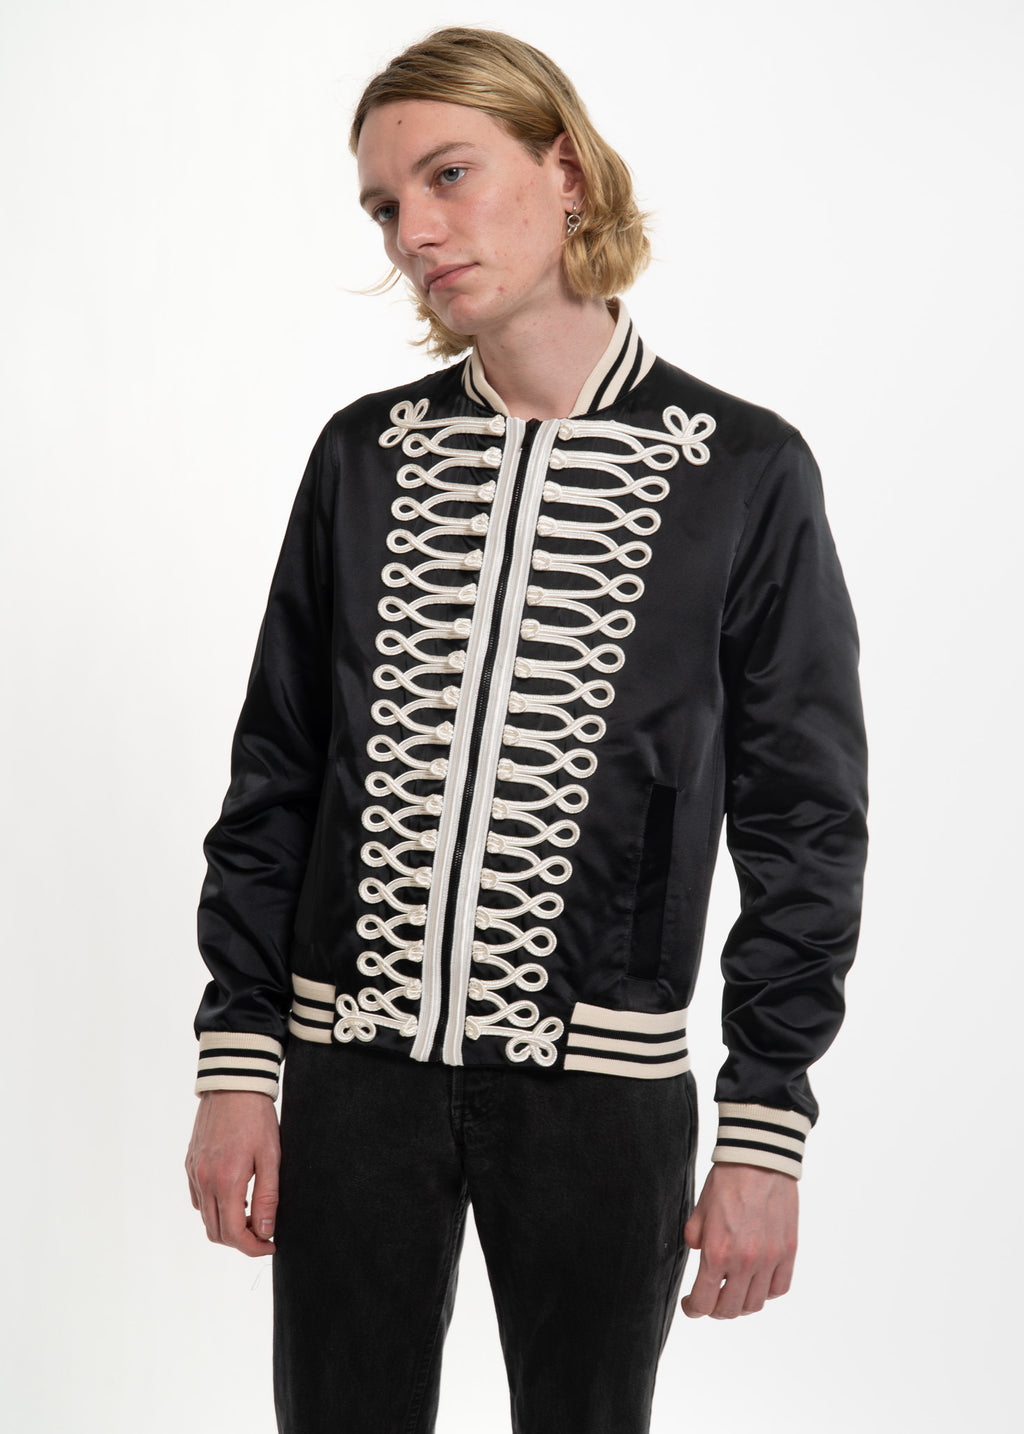 Black Jackson Teddy Jacket